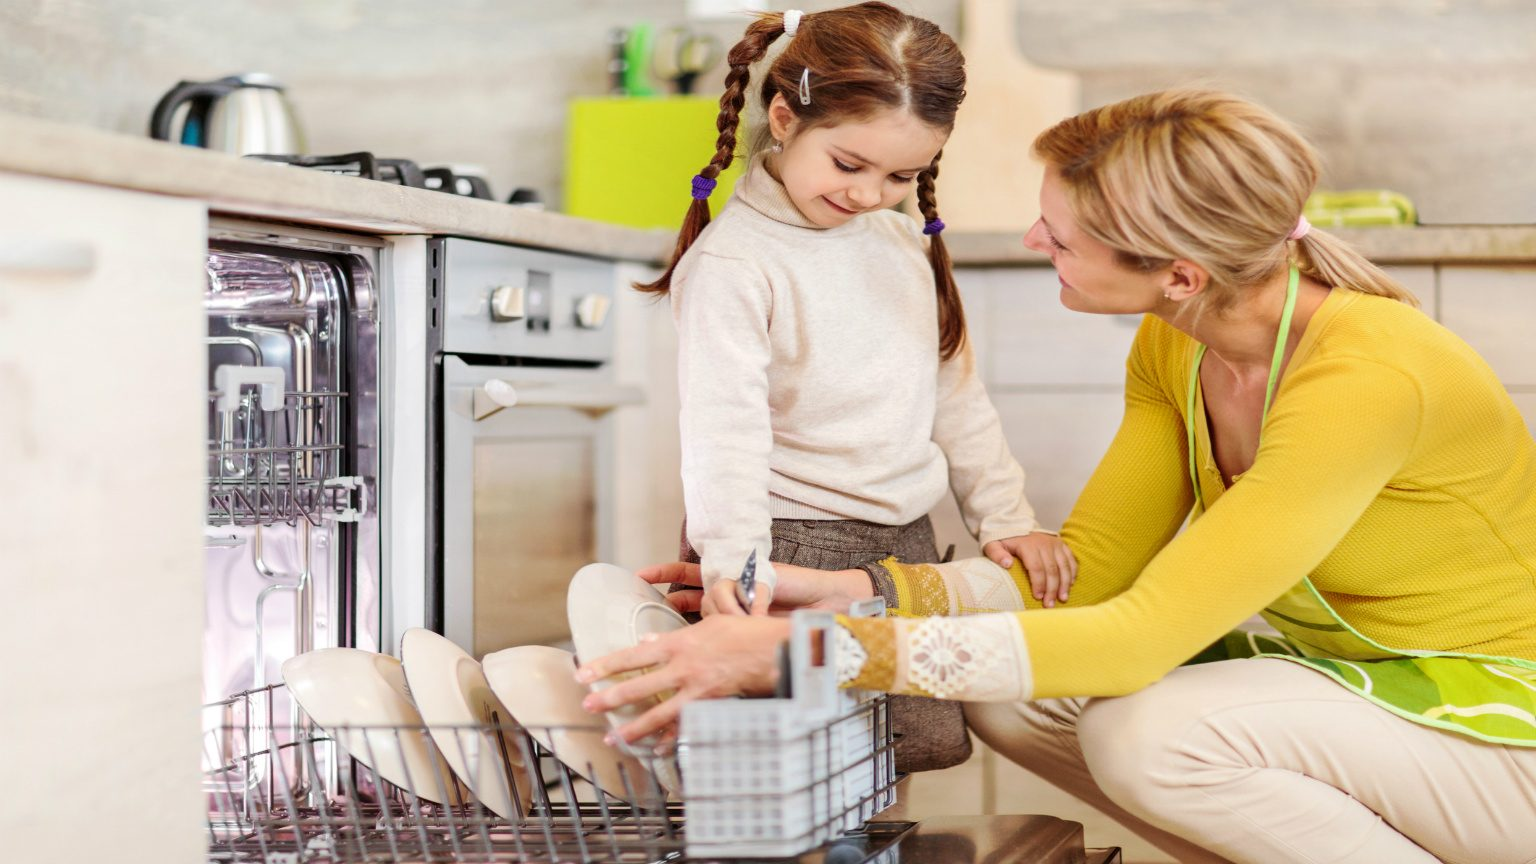 Mother And Daughter Using Dishwasher